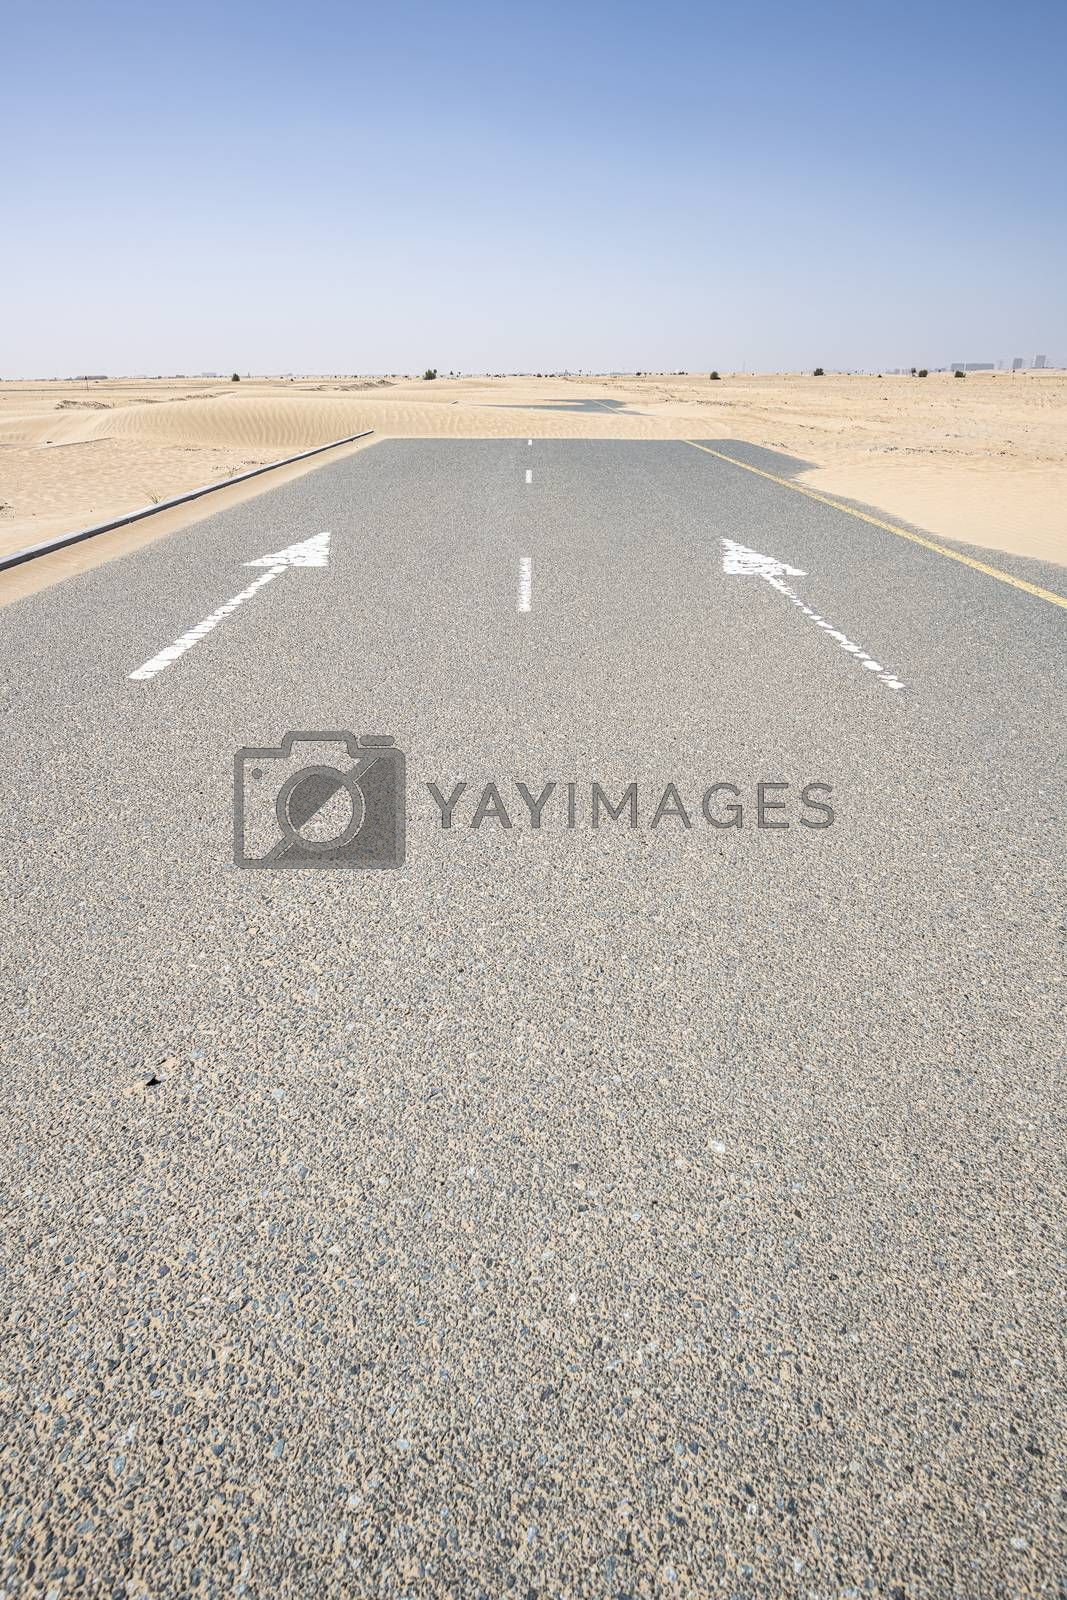 Vertical shot of an empty road covered by sand in the desert with blue sky. Large copy space on the tarmac